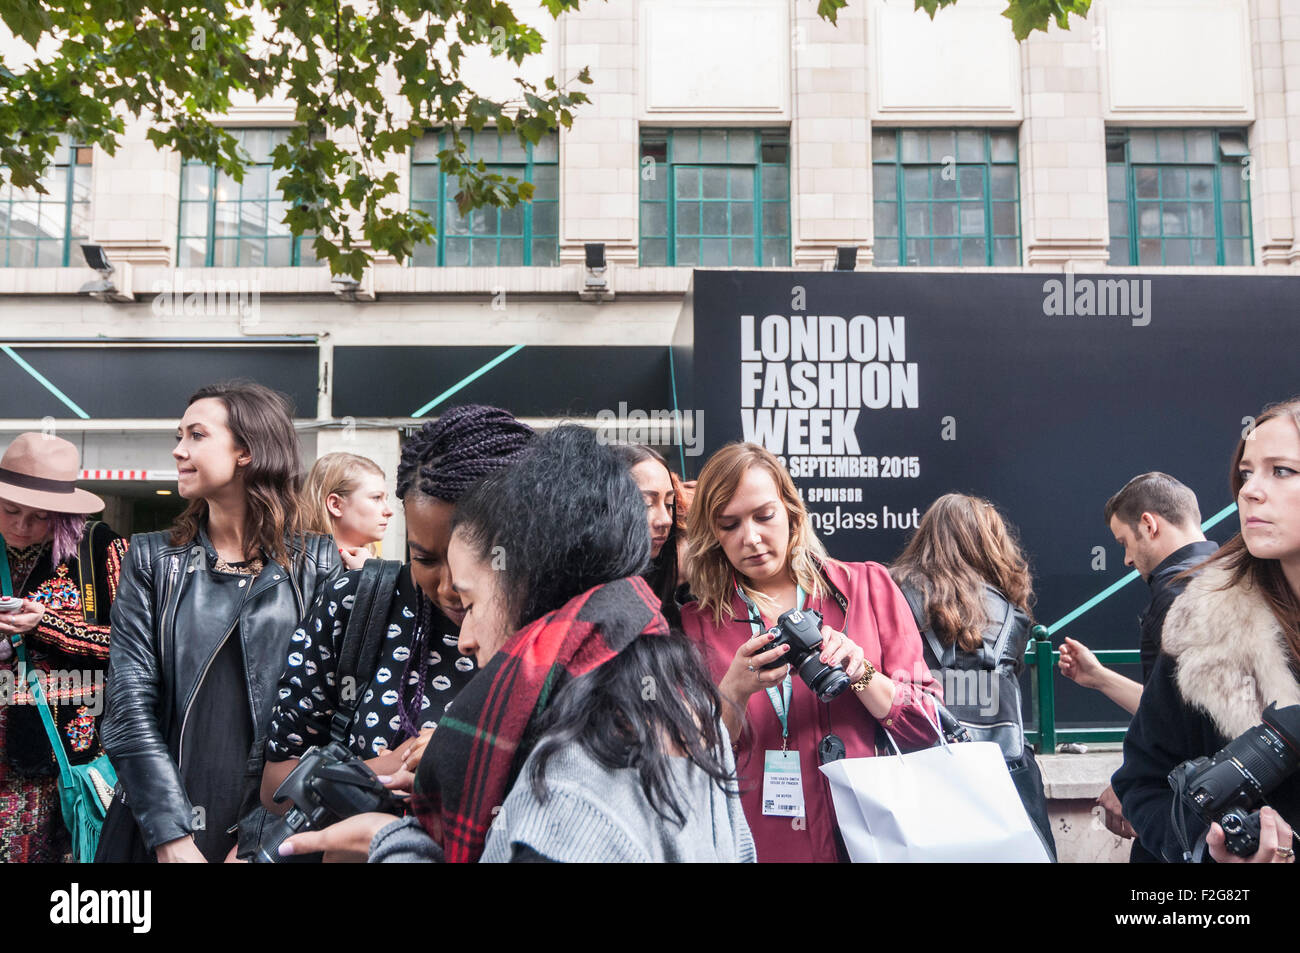 Londres, Royaume-Uni. 18 septembre 2015. Fashionistas et partisans de la mode se rassemblent à la nouvelle Photo Stock